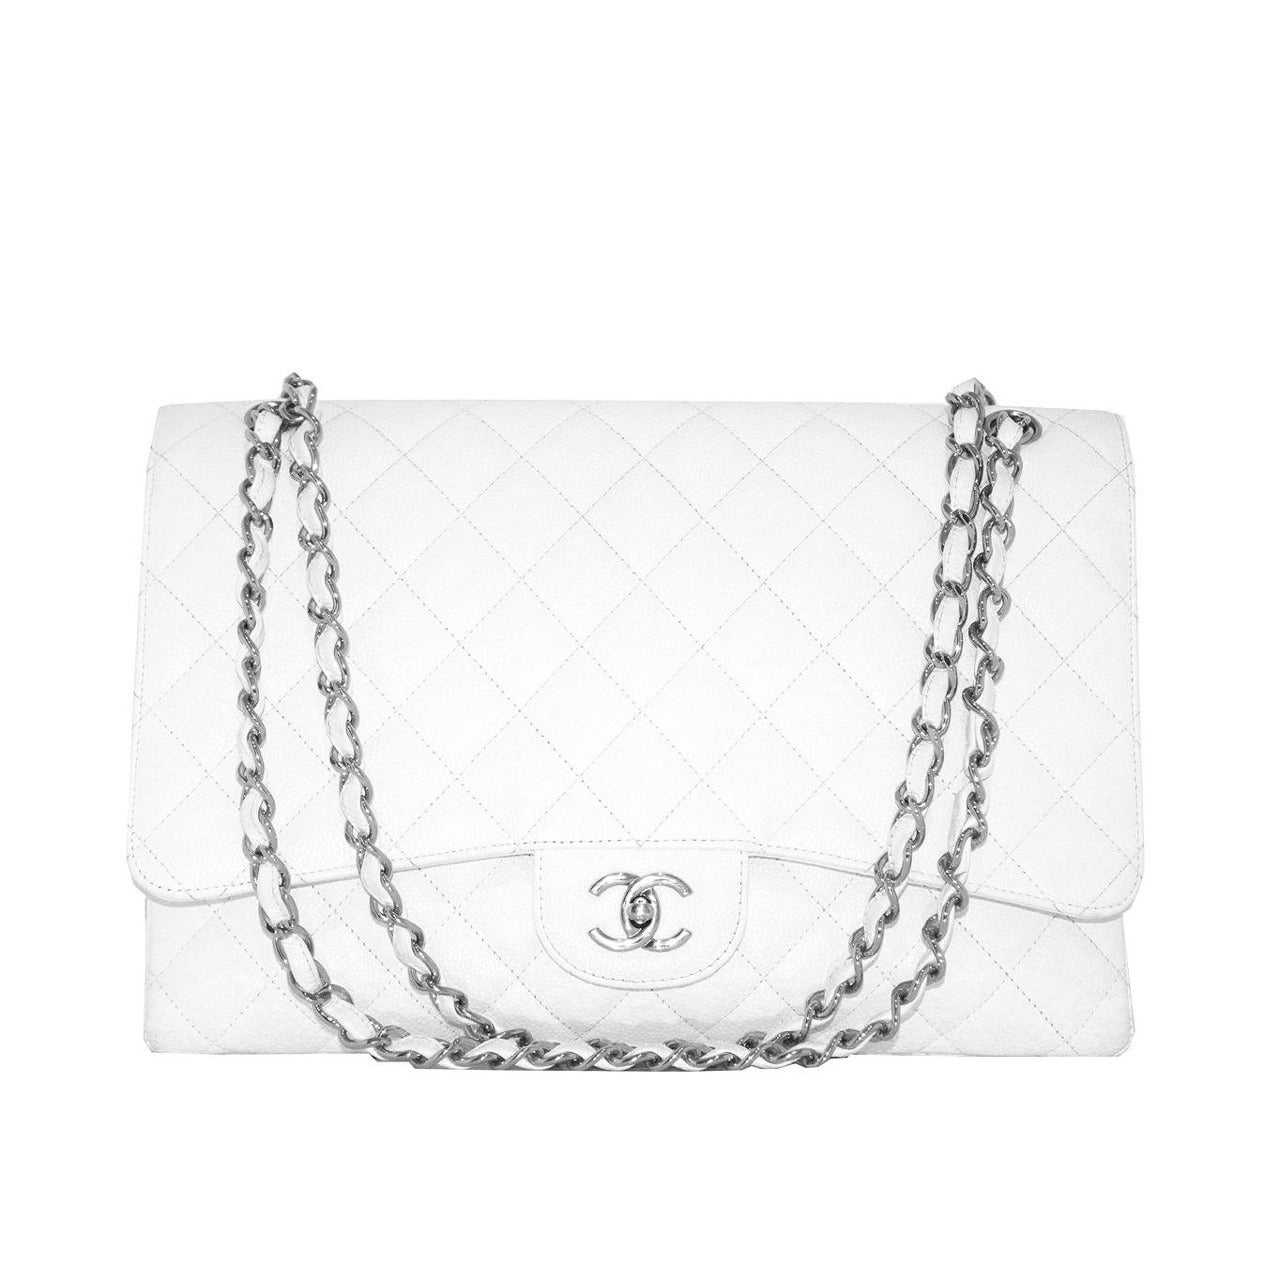 Chanel White Jumbo Caviar Classic Quilted Flap bag CIRCA 2010 1